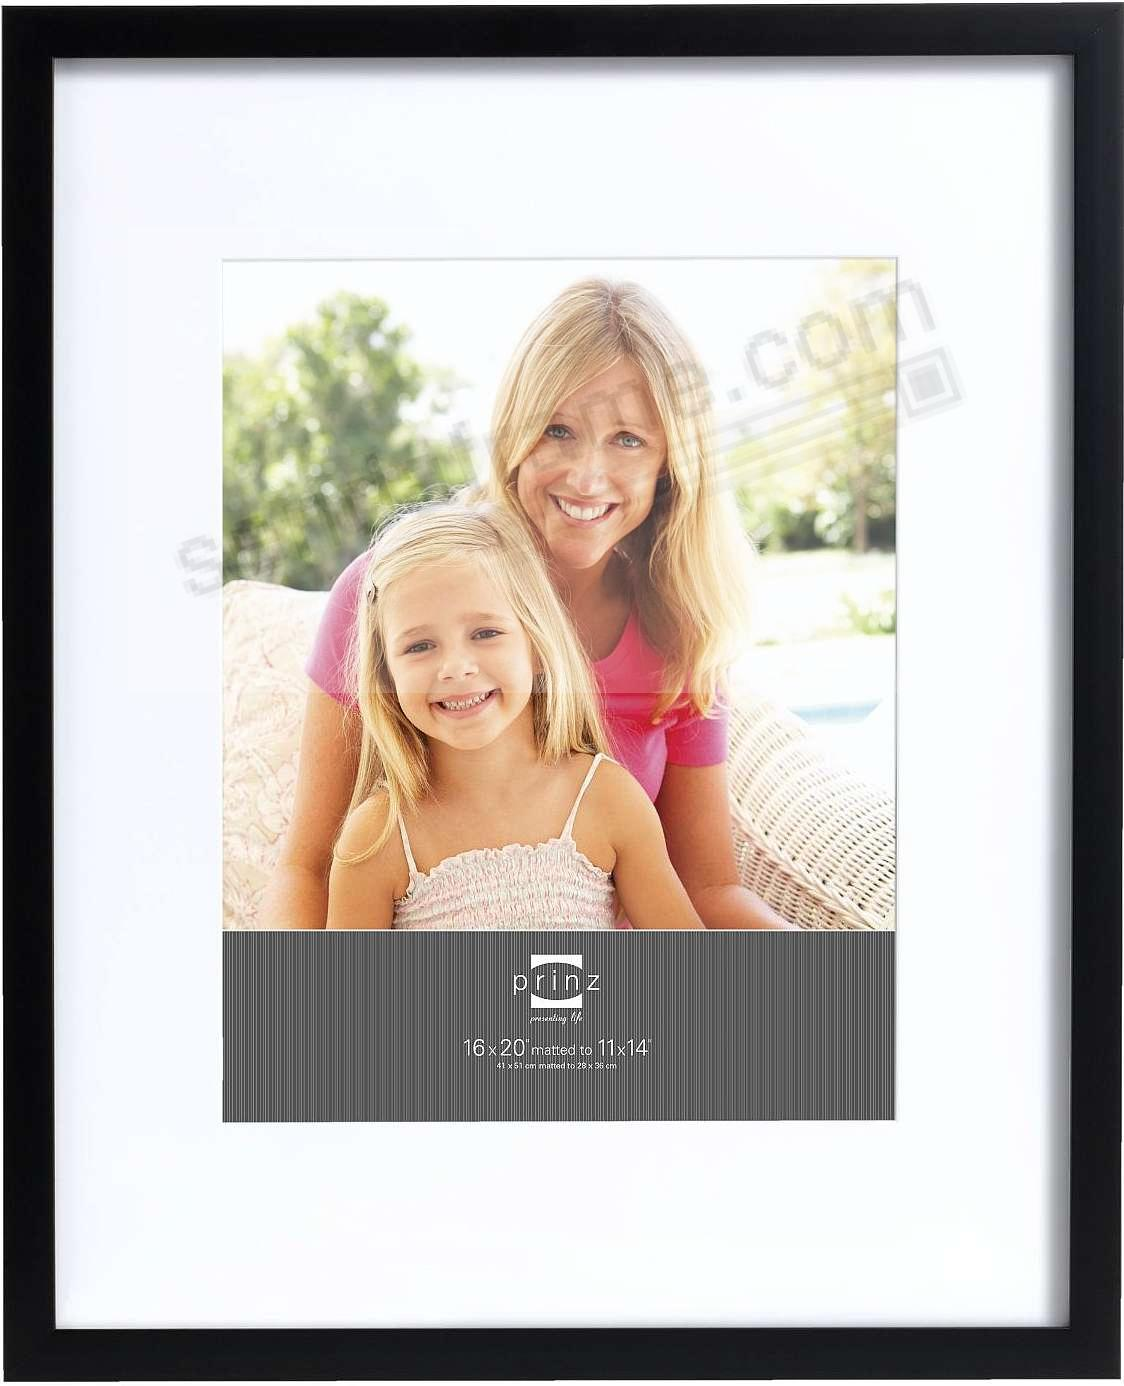 Matted black polystyrene 16x20/11x14 frame by Prinz®